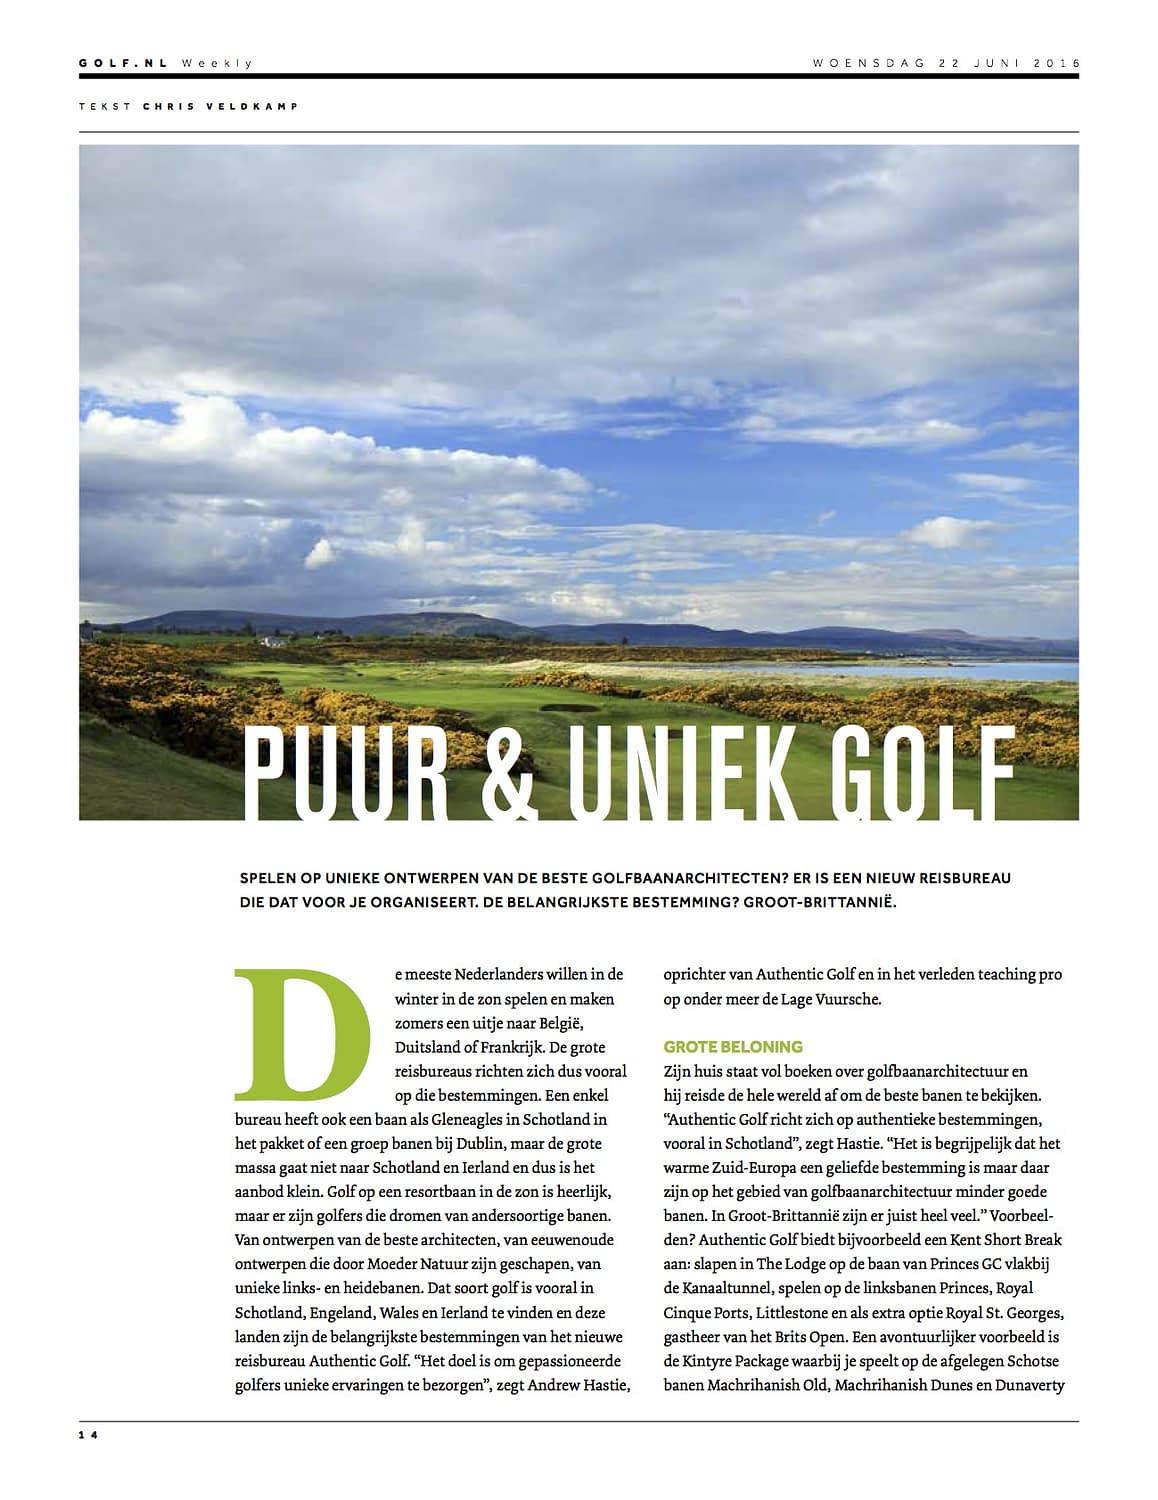 golfnl-weekly-9.pdf authentic Golf